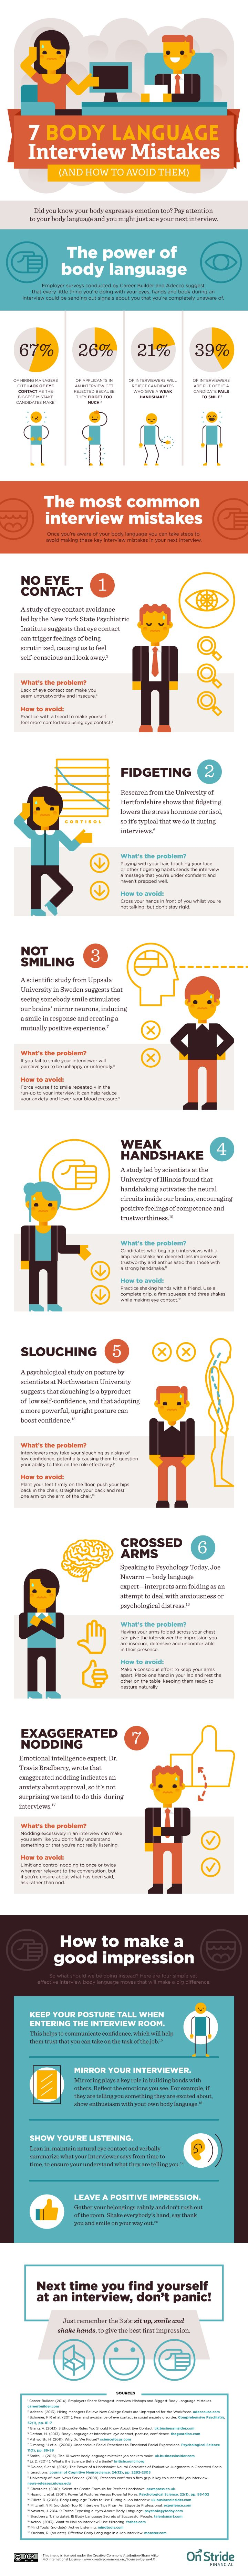 The 7 Body Language Job Interview Mistakes Infographic shows some of the statistics and solutions behind the way you present yourself at a job interview.